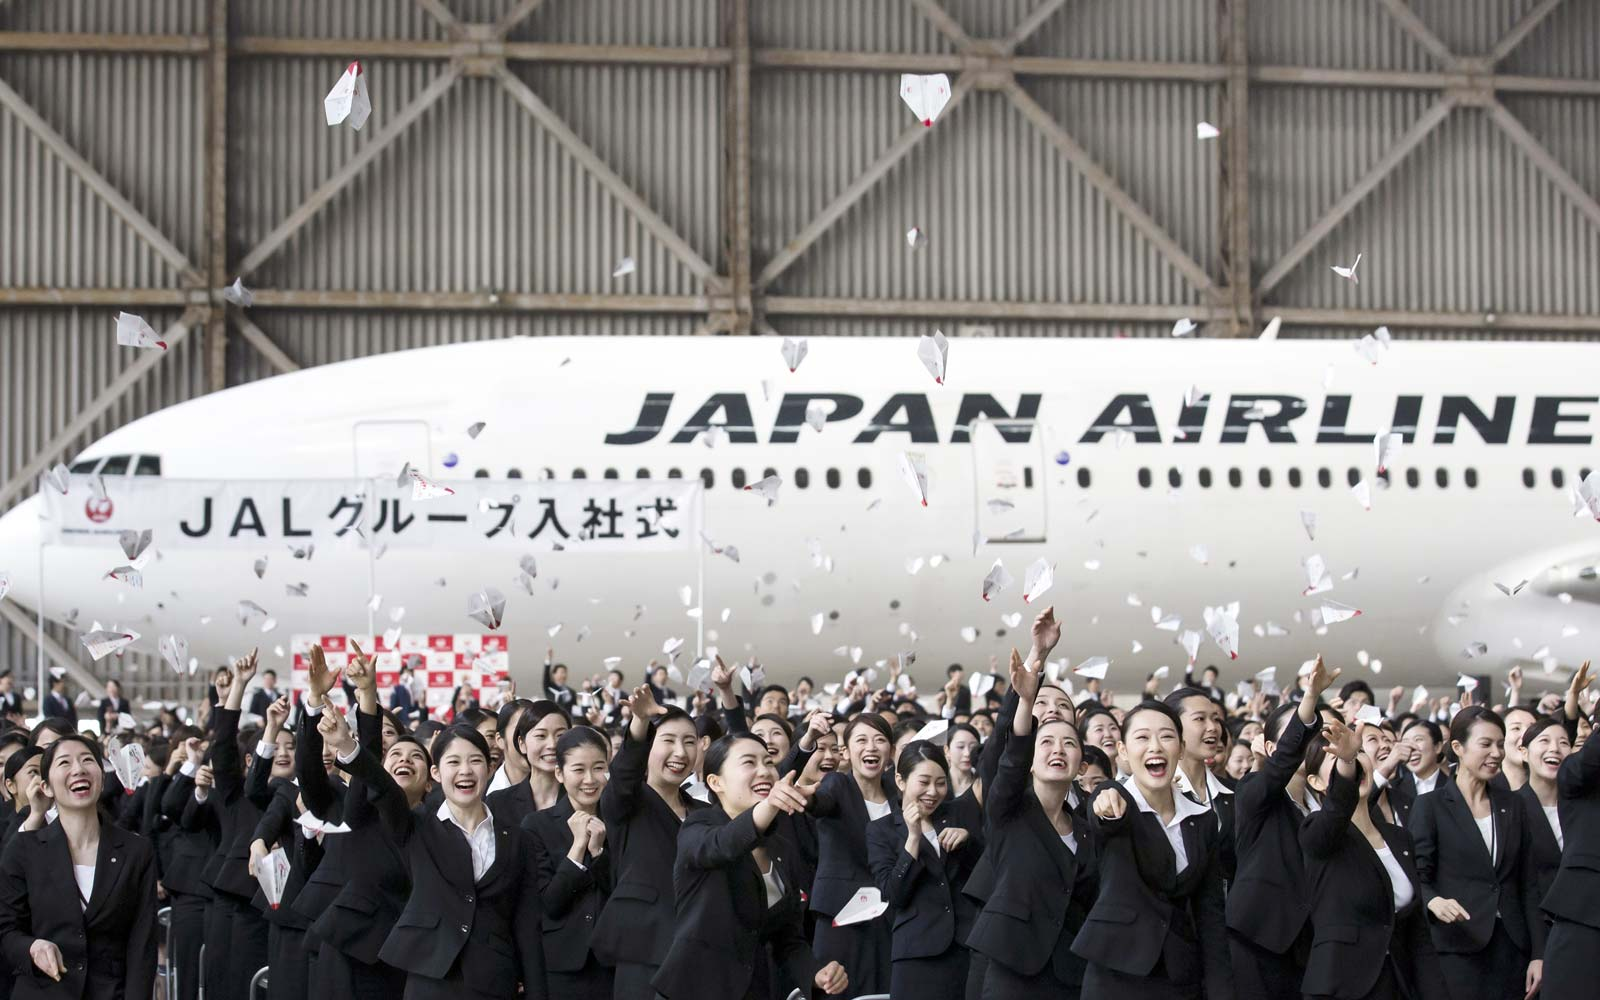 New Japan Airlines crew celebrate in front of a Boeing 777